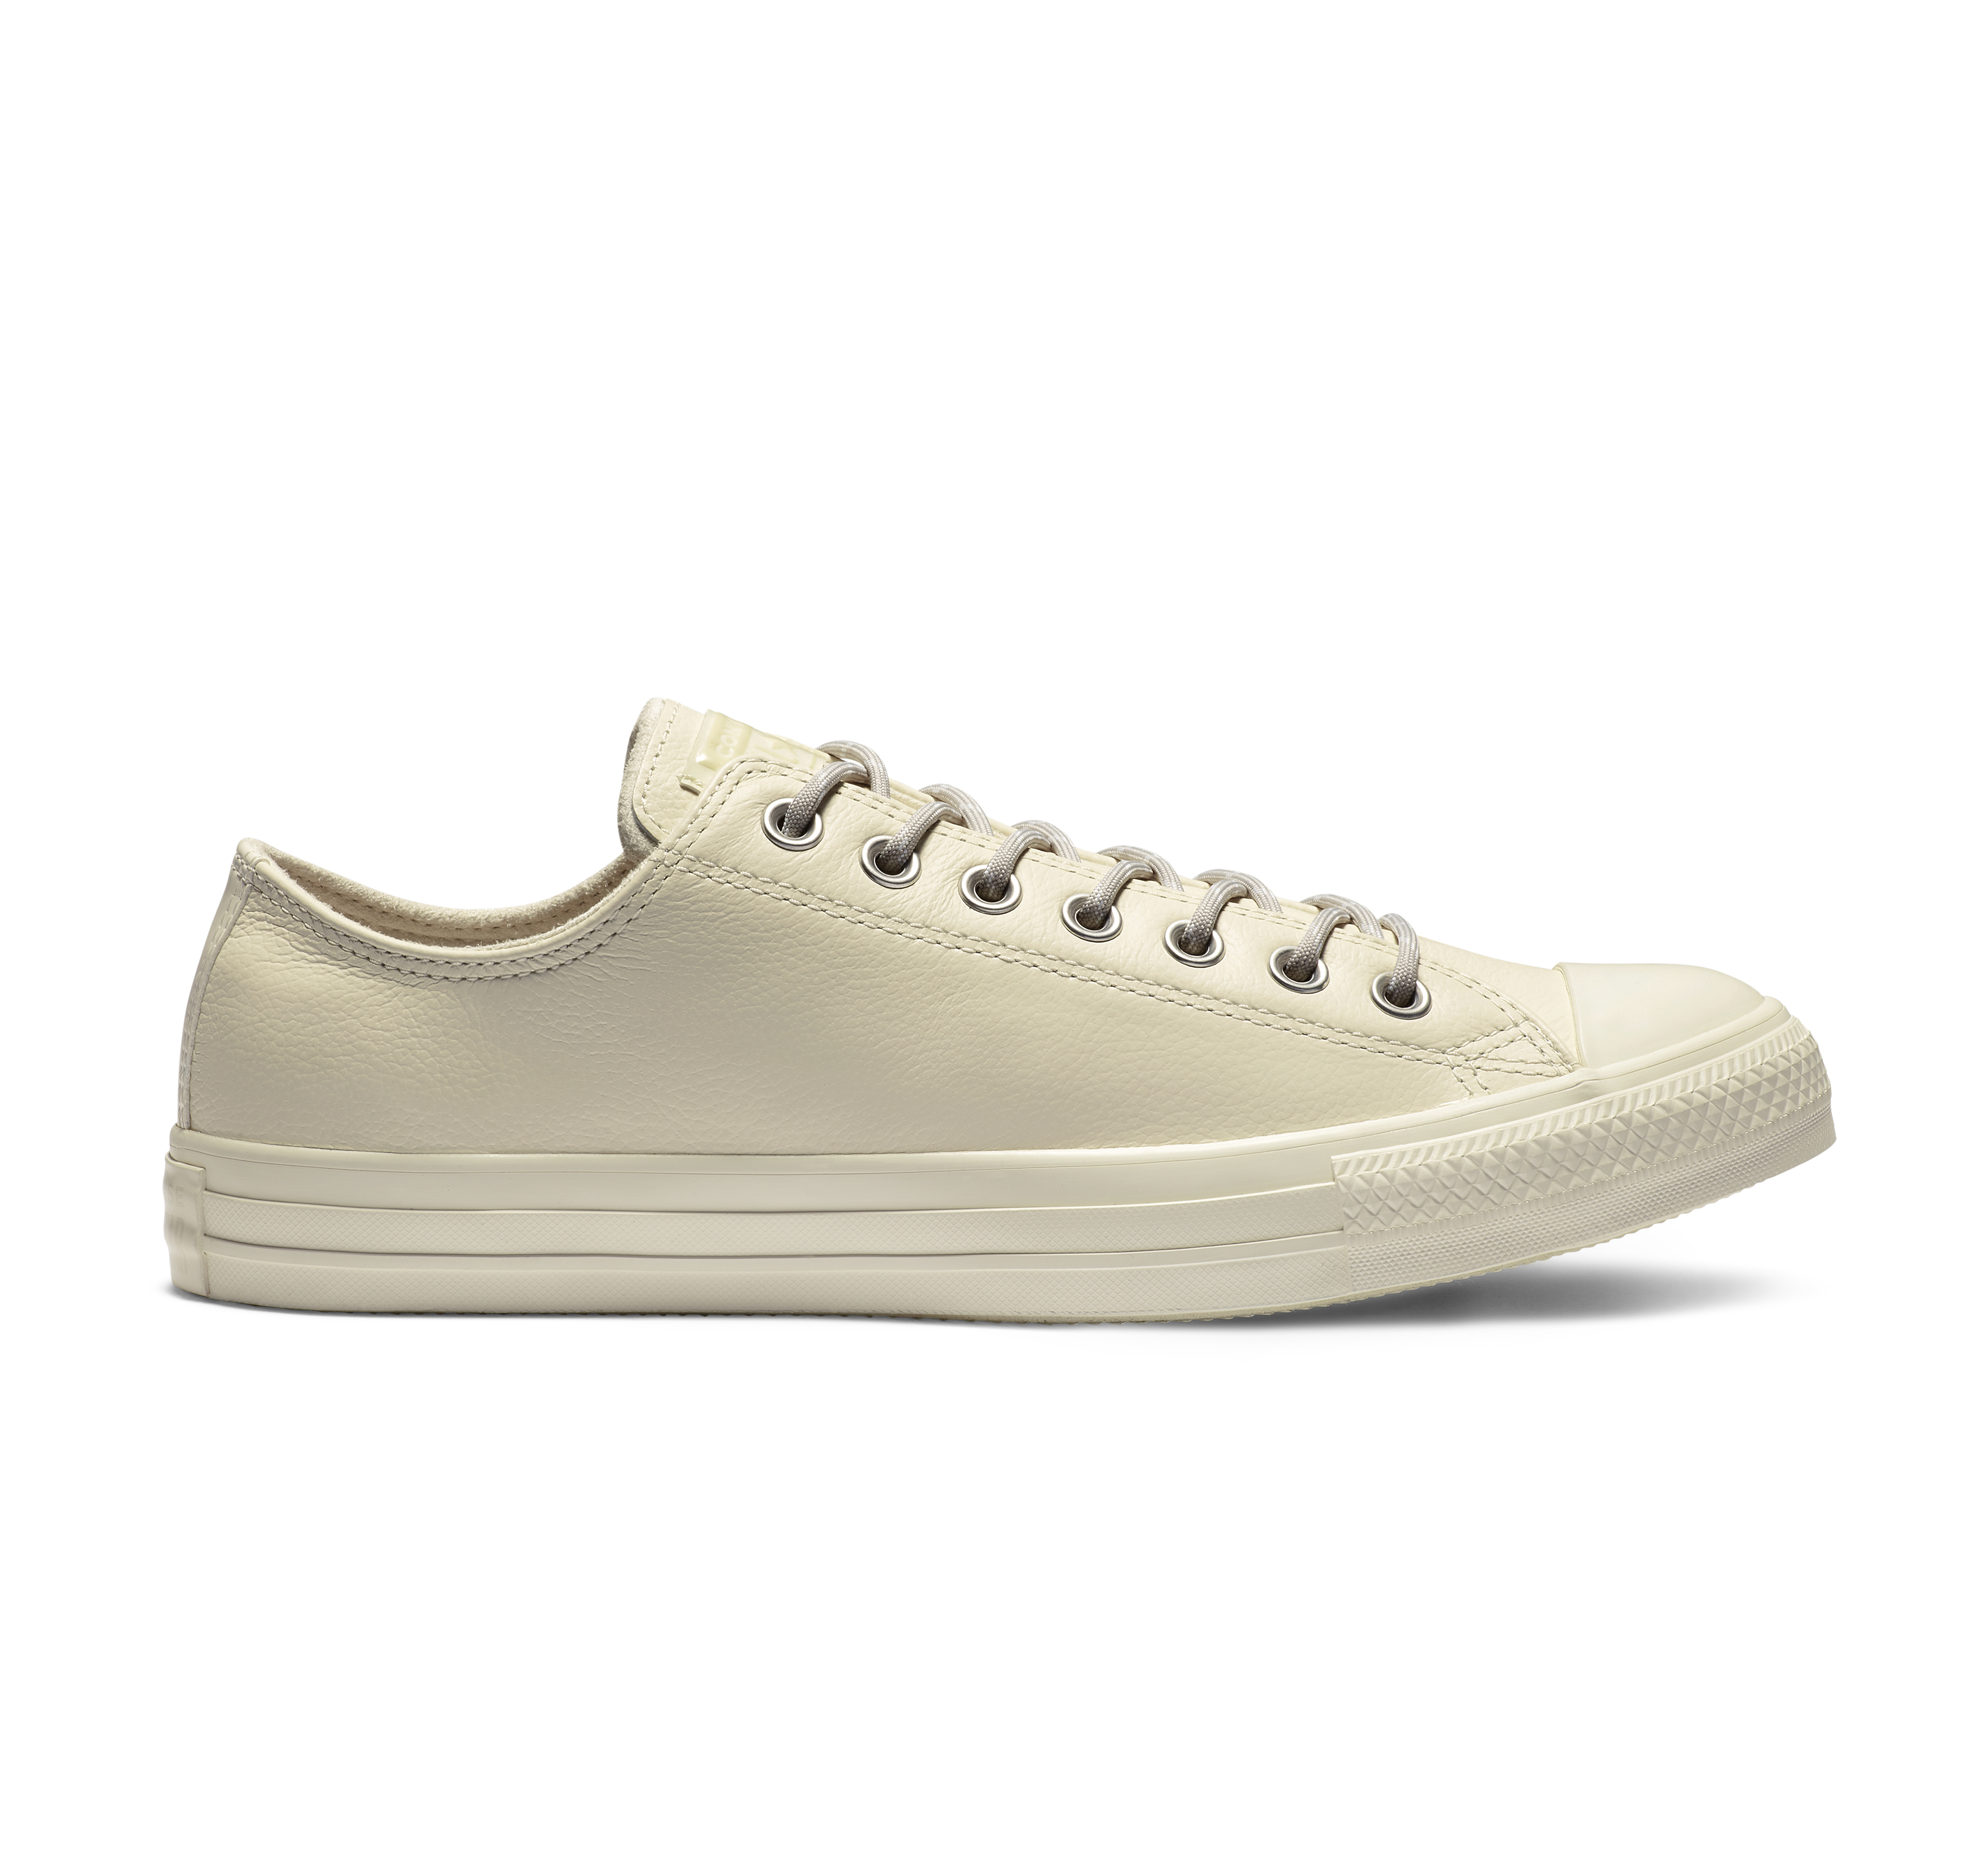 Chuck Taylor All Star Limo Leather Low Top in 2019